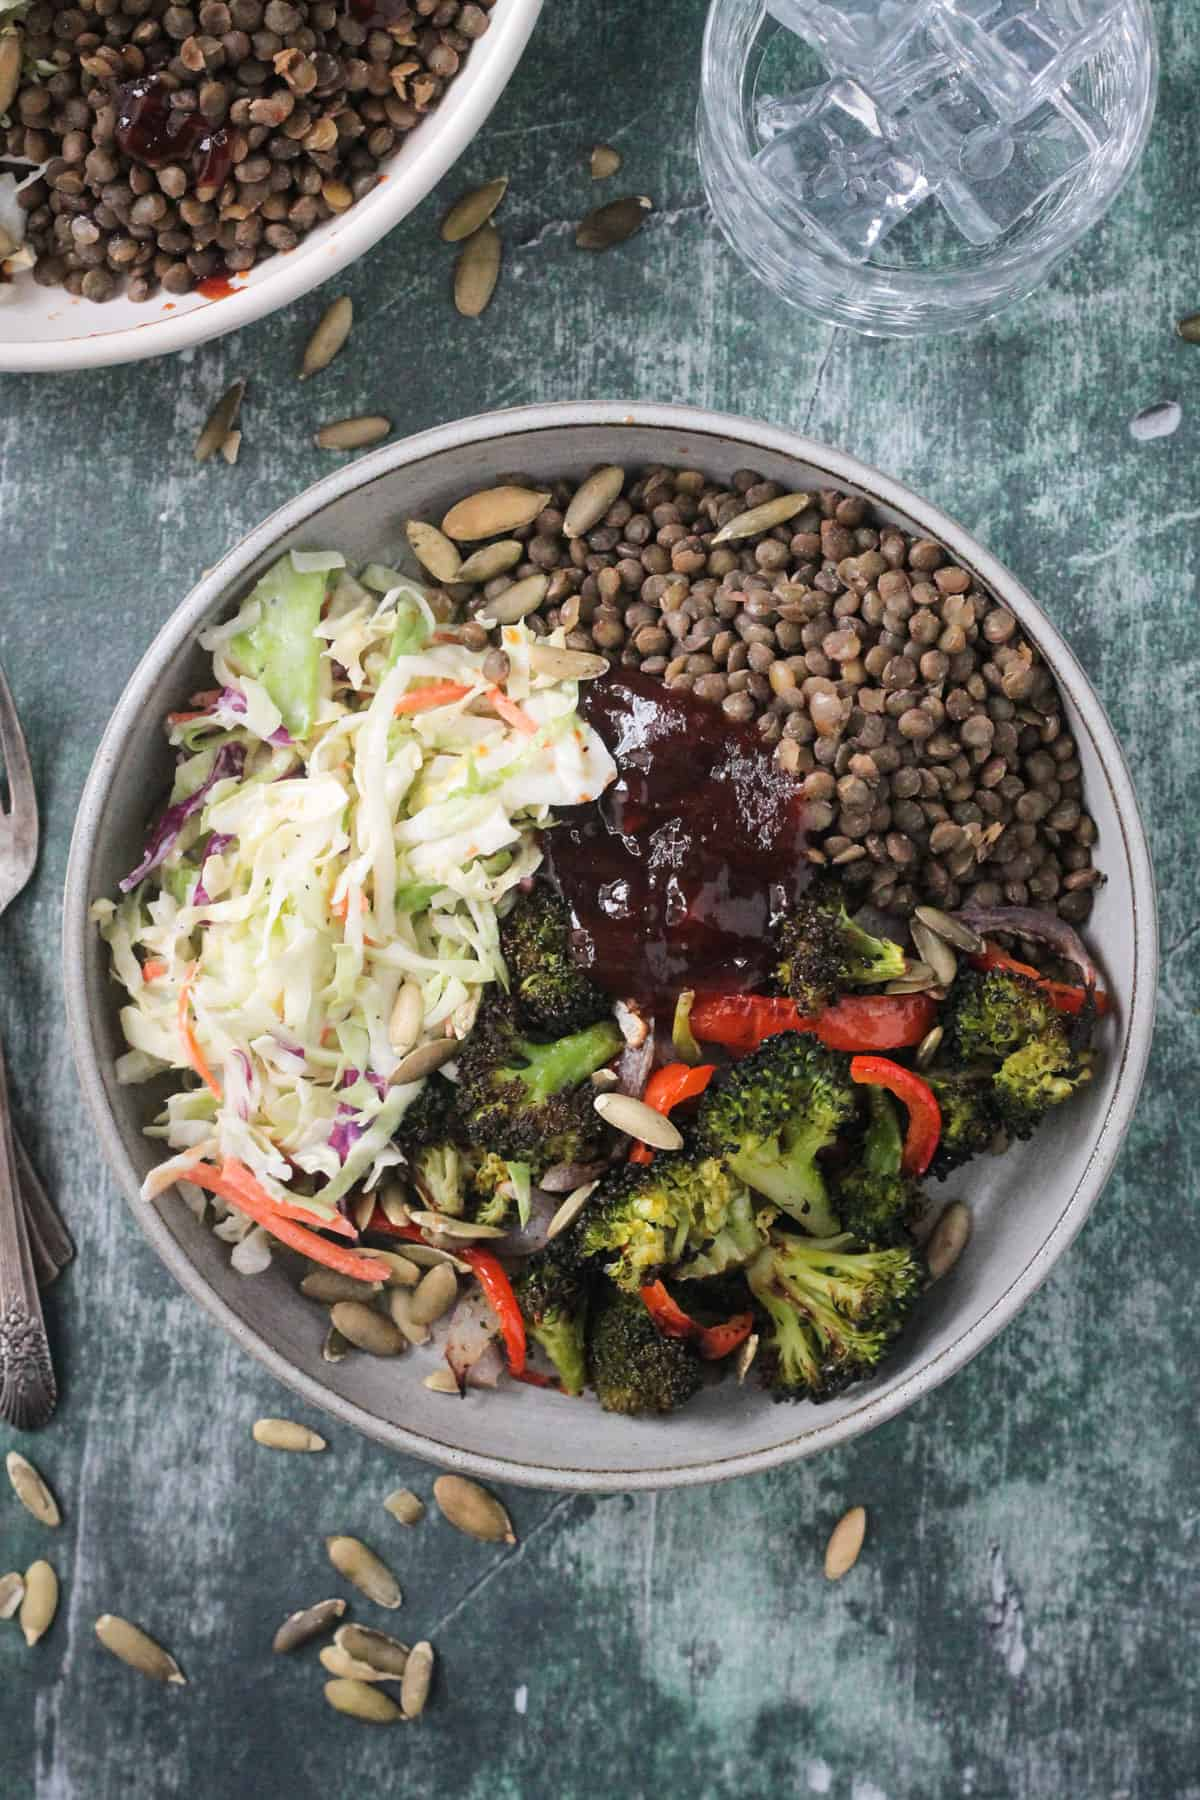 Lentils, coleslaw, roasted broccoli, and bbq sauce in a gray flat bowl.